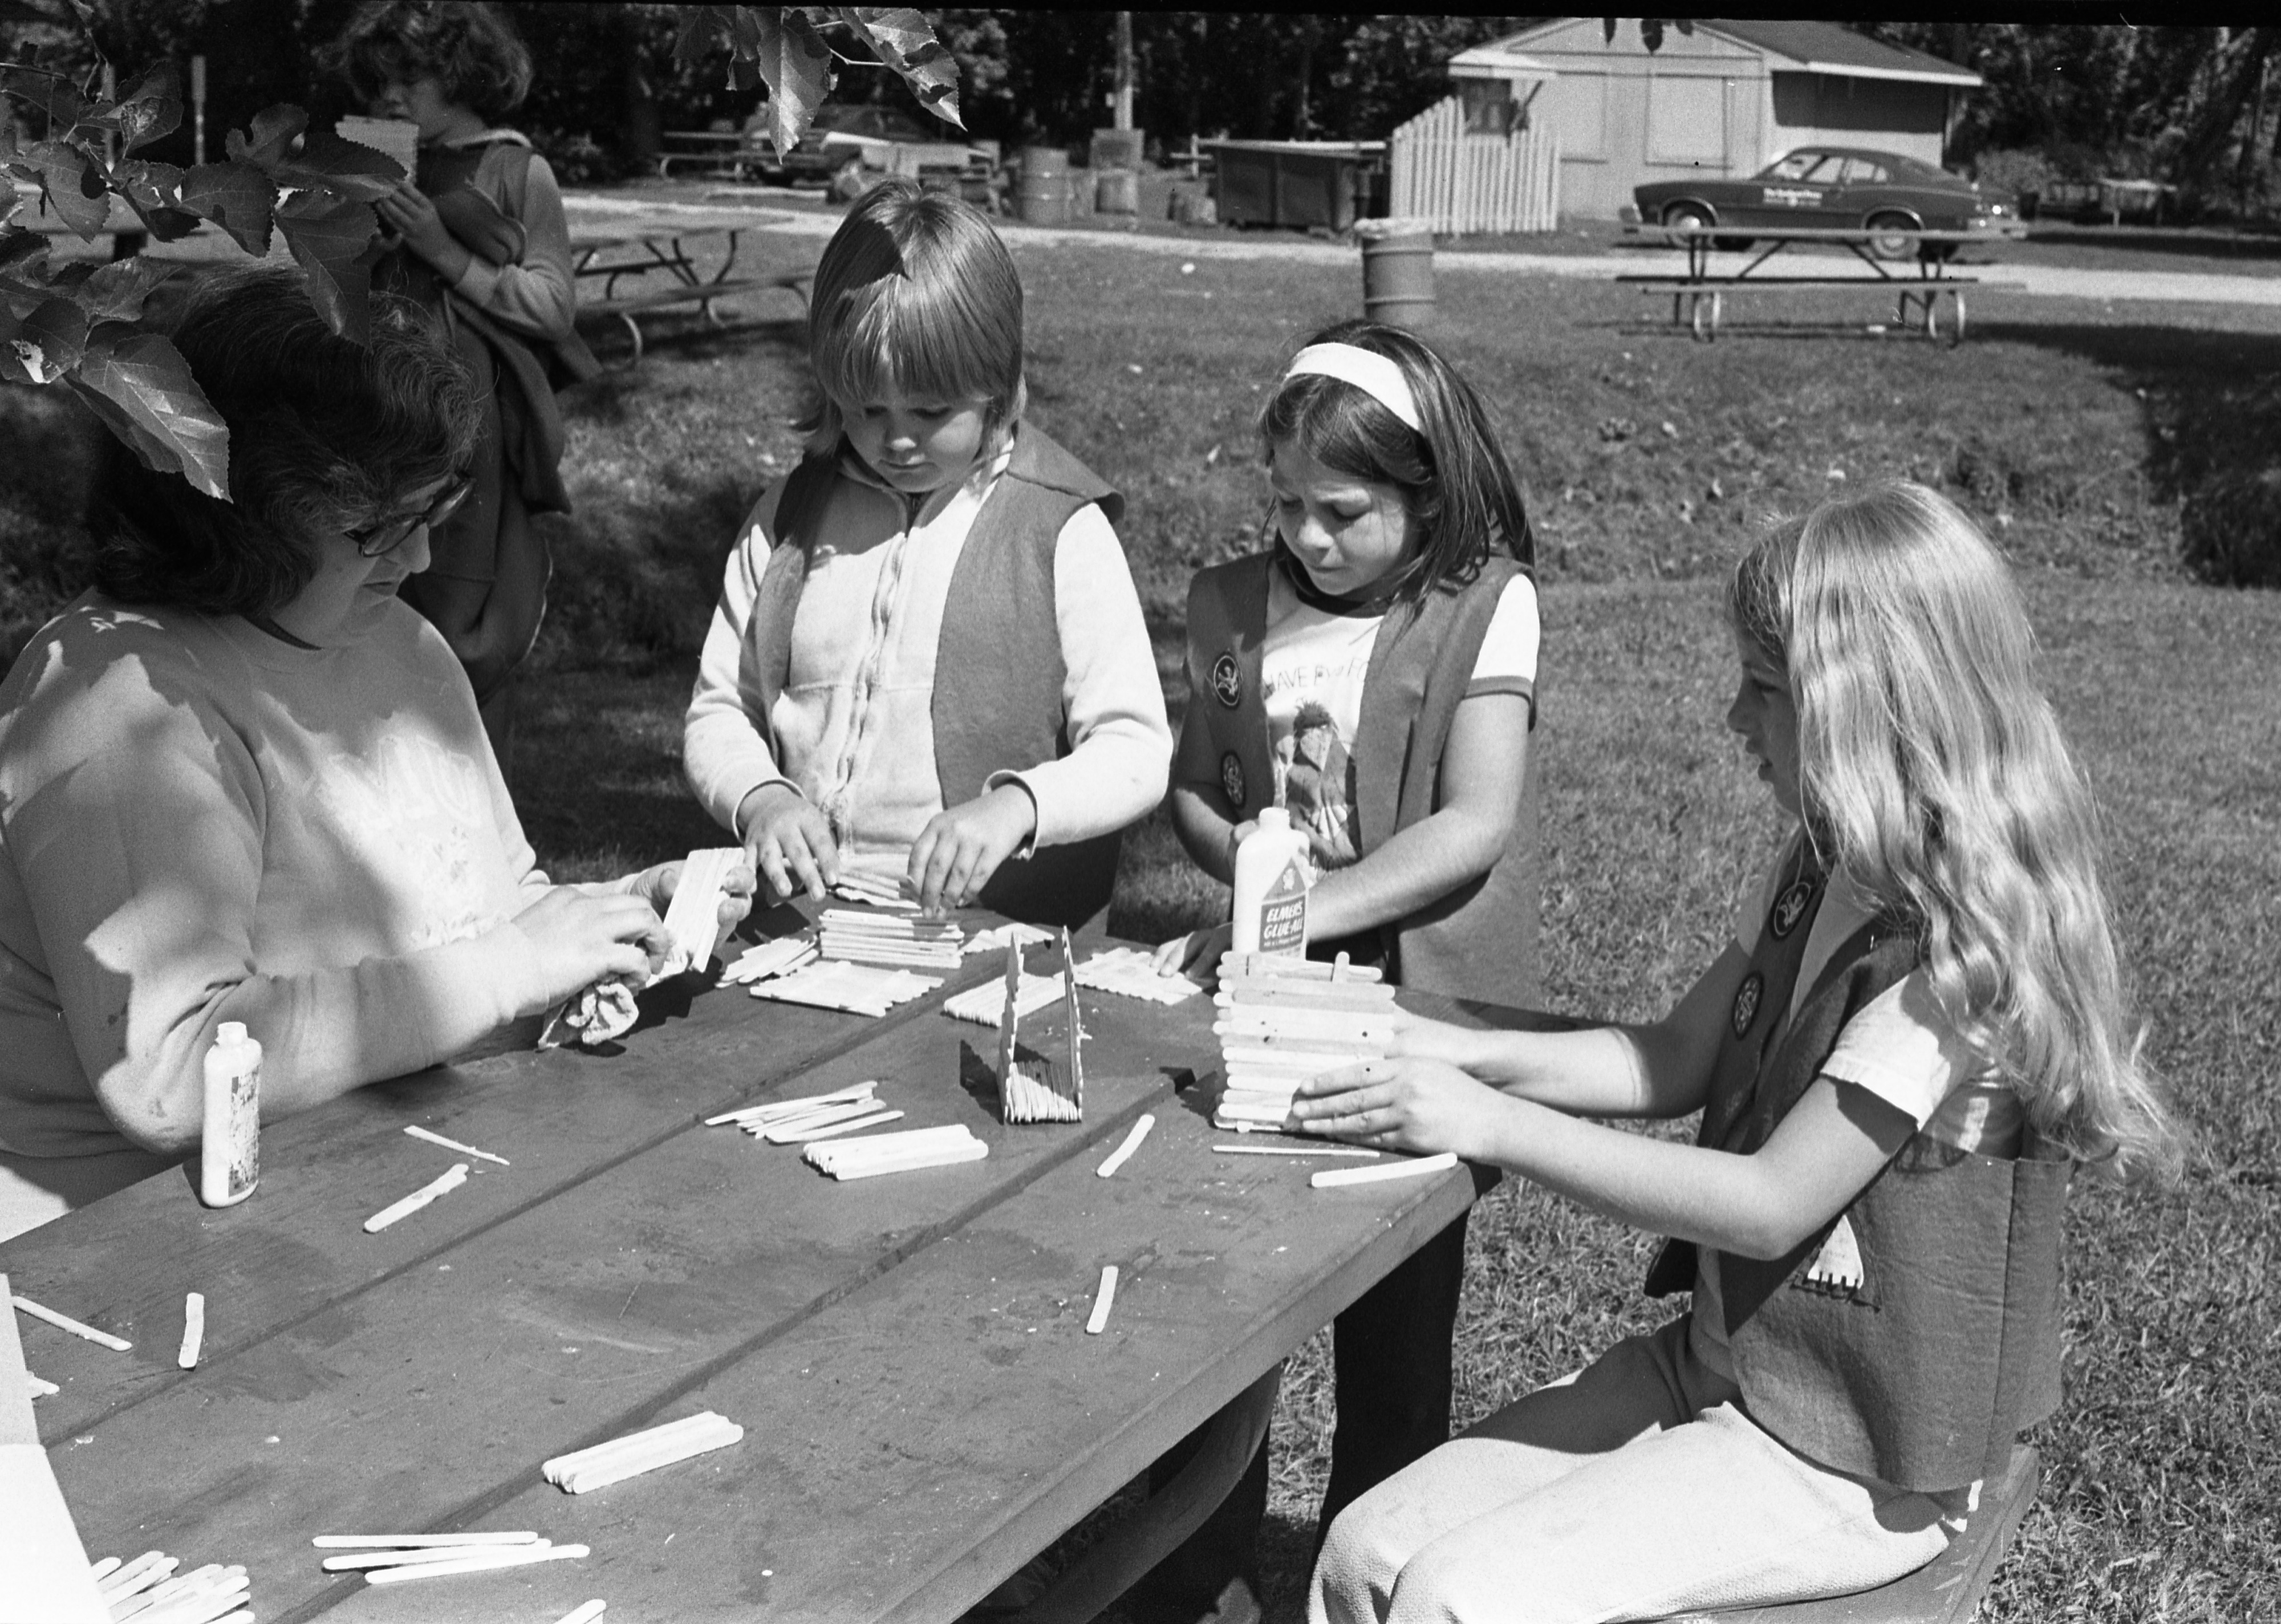 Craft Time For Camp Fire Girls & Leader At Moose Campgrounds, August 1979 image